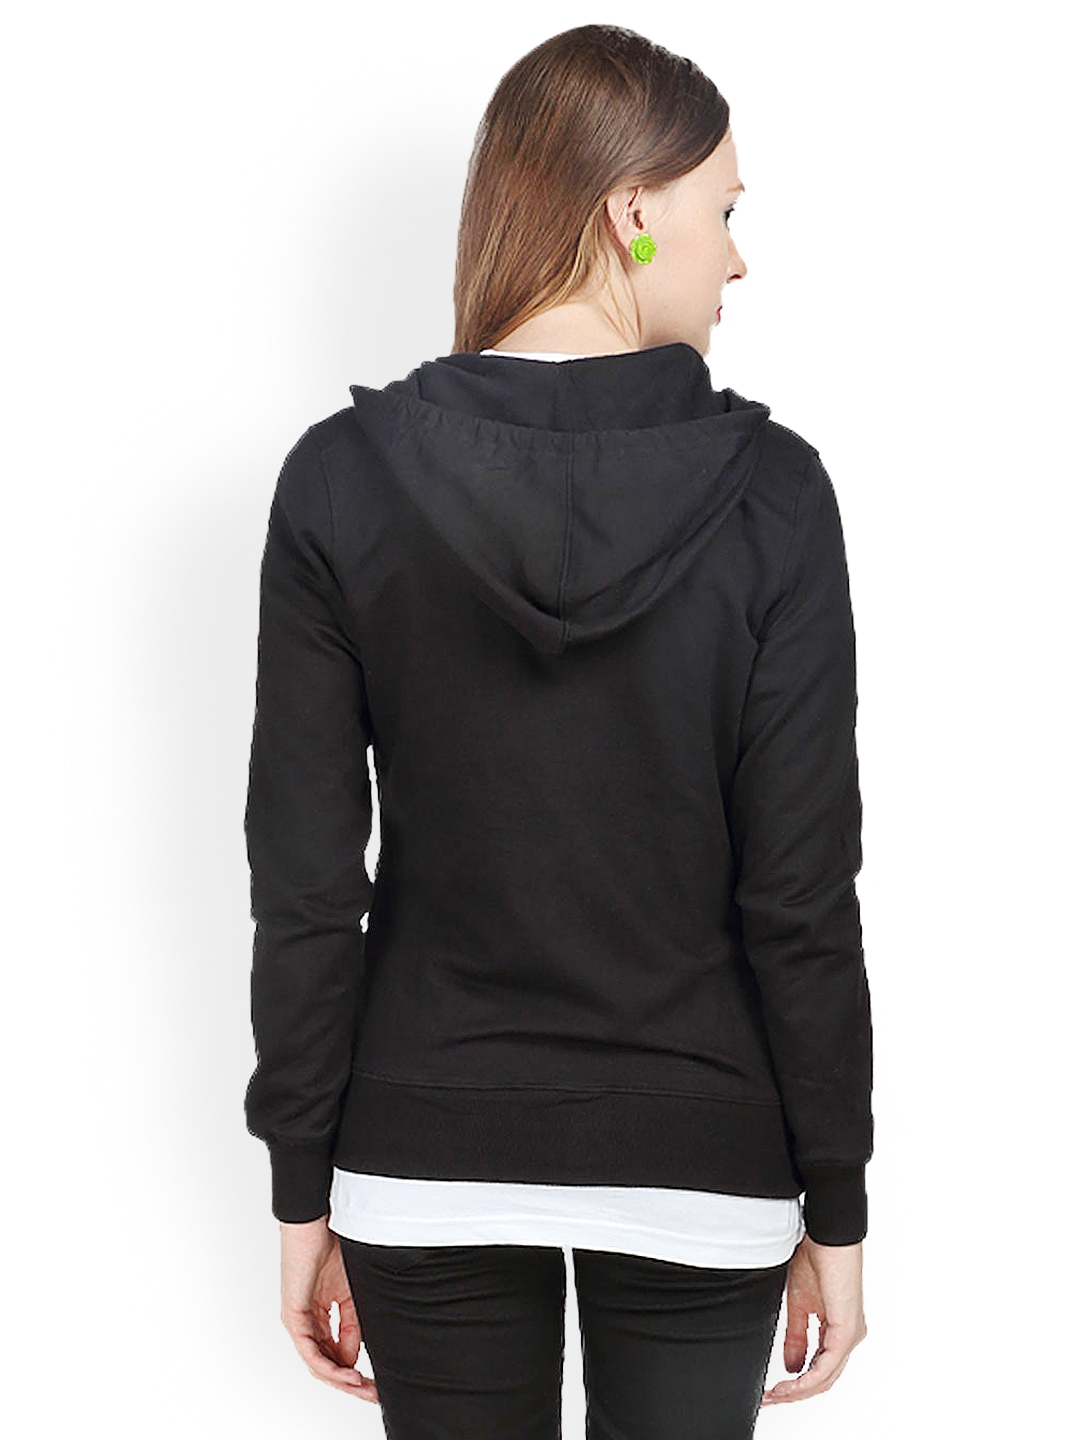 WOMEN LONG-SLEEVE HOODED SWEATSHIRT $ please SIGN IN/REGISTER. WOMEN SWEAT LONG-SLEEVE FULL-ZIP HOODIE women sweatshirts and sweatpants black, gray, and navy blue — for a muted atmosphere. Of course, you could choose a sweatshirt to just wear around the house, as well!.